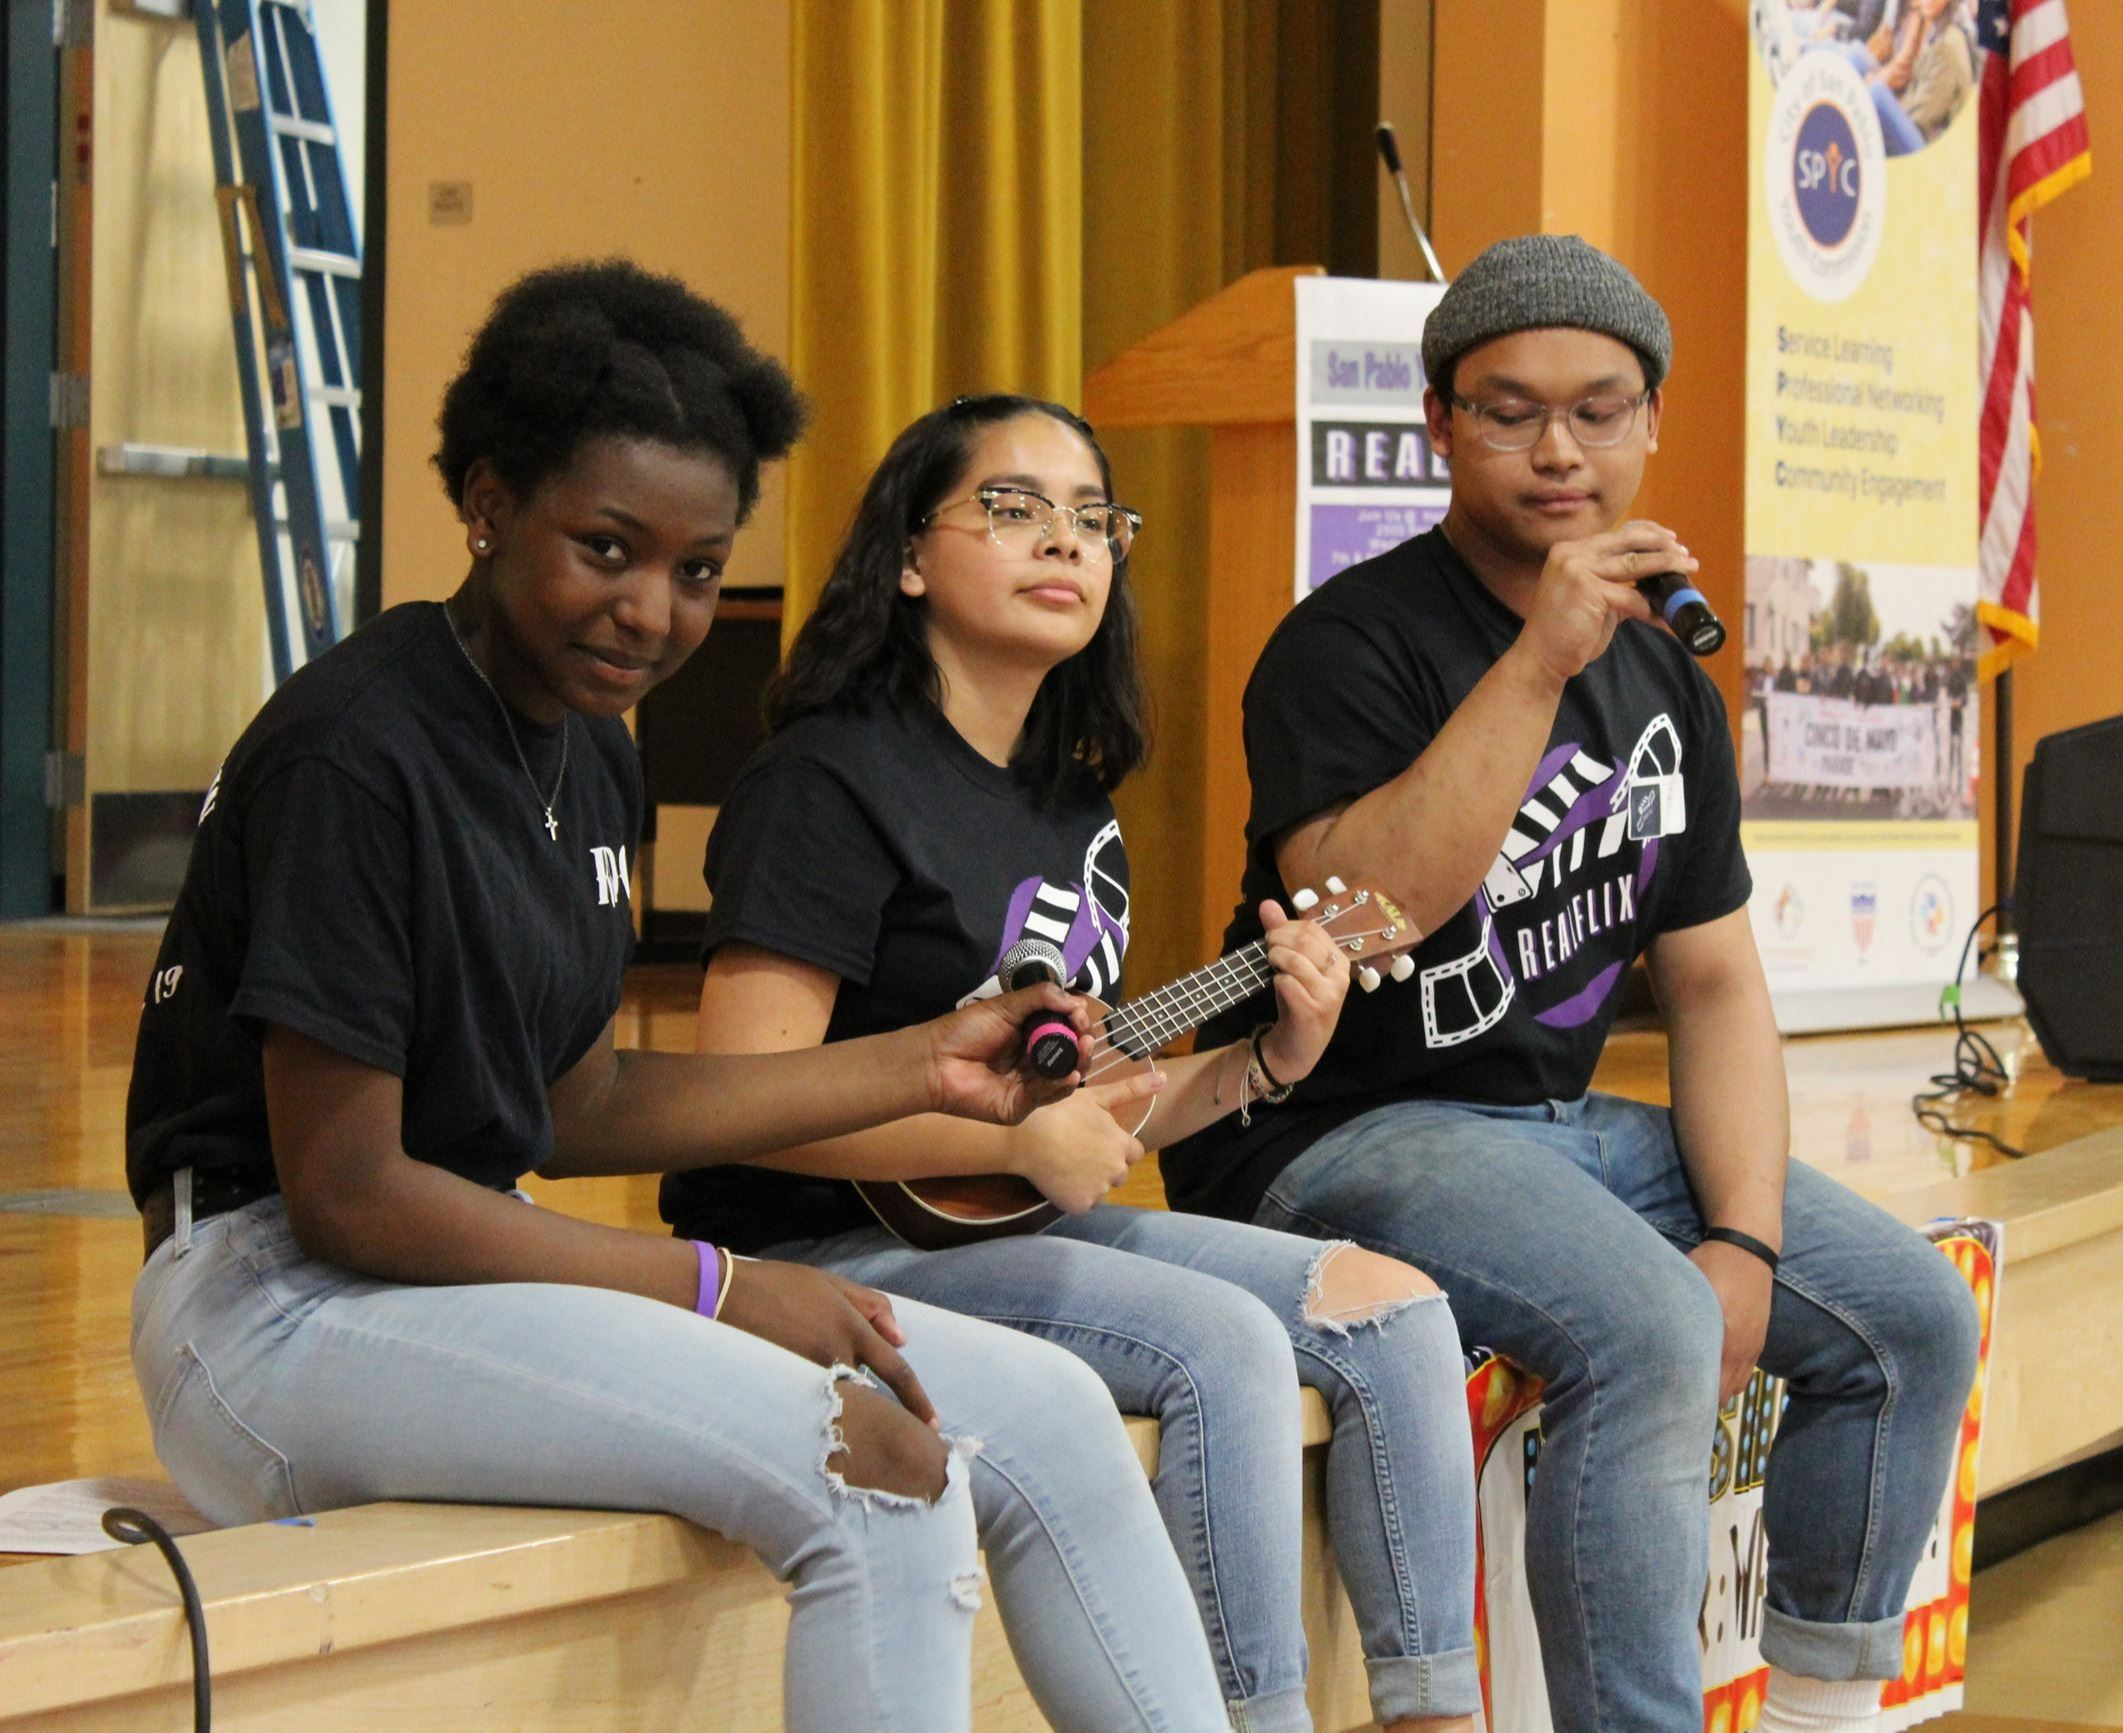 San Pablo Youth Commissioners Participating during Youth Summit Event